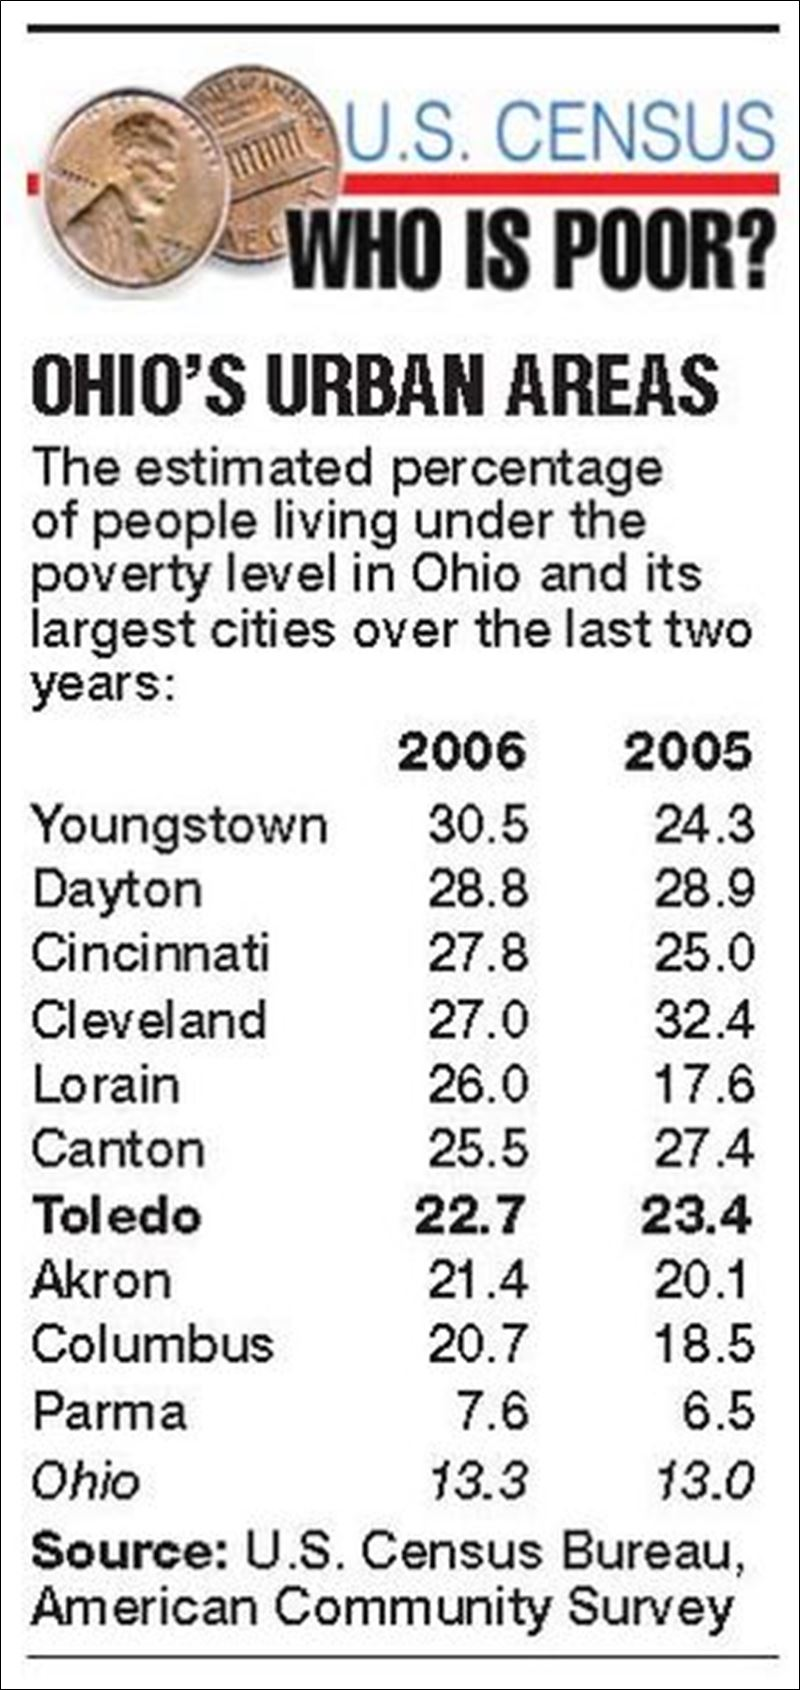 poverty-falls-as-rate-rises-in-Ohio-Michigan-level-also-grows.jpg